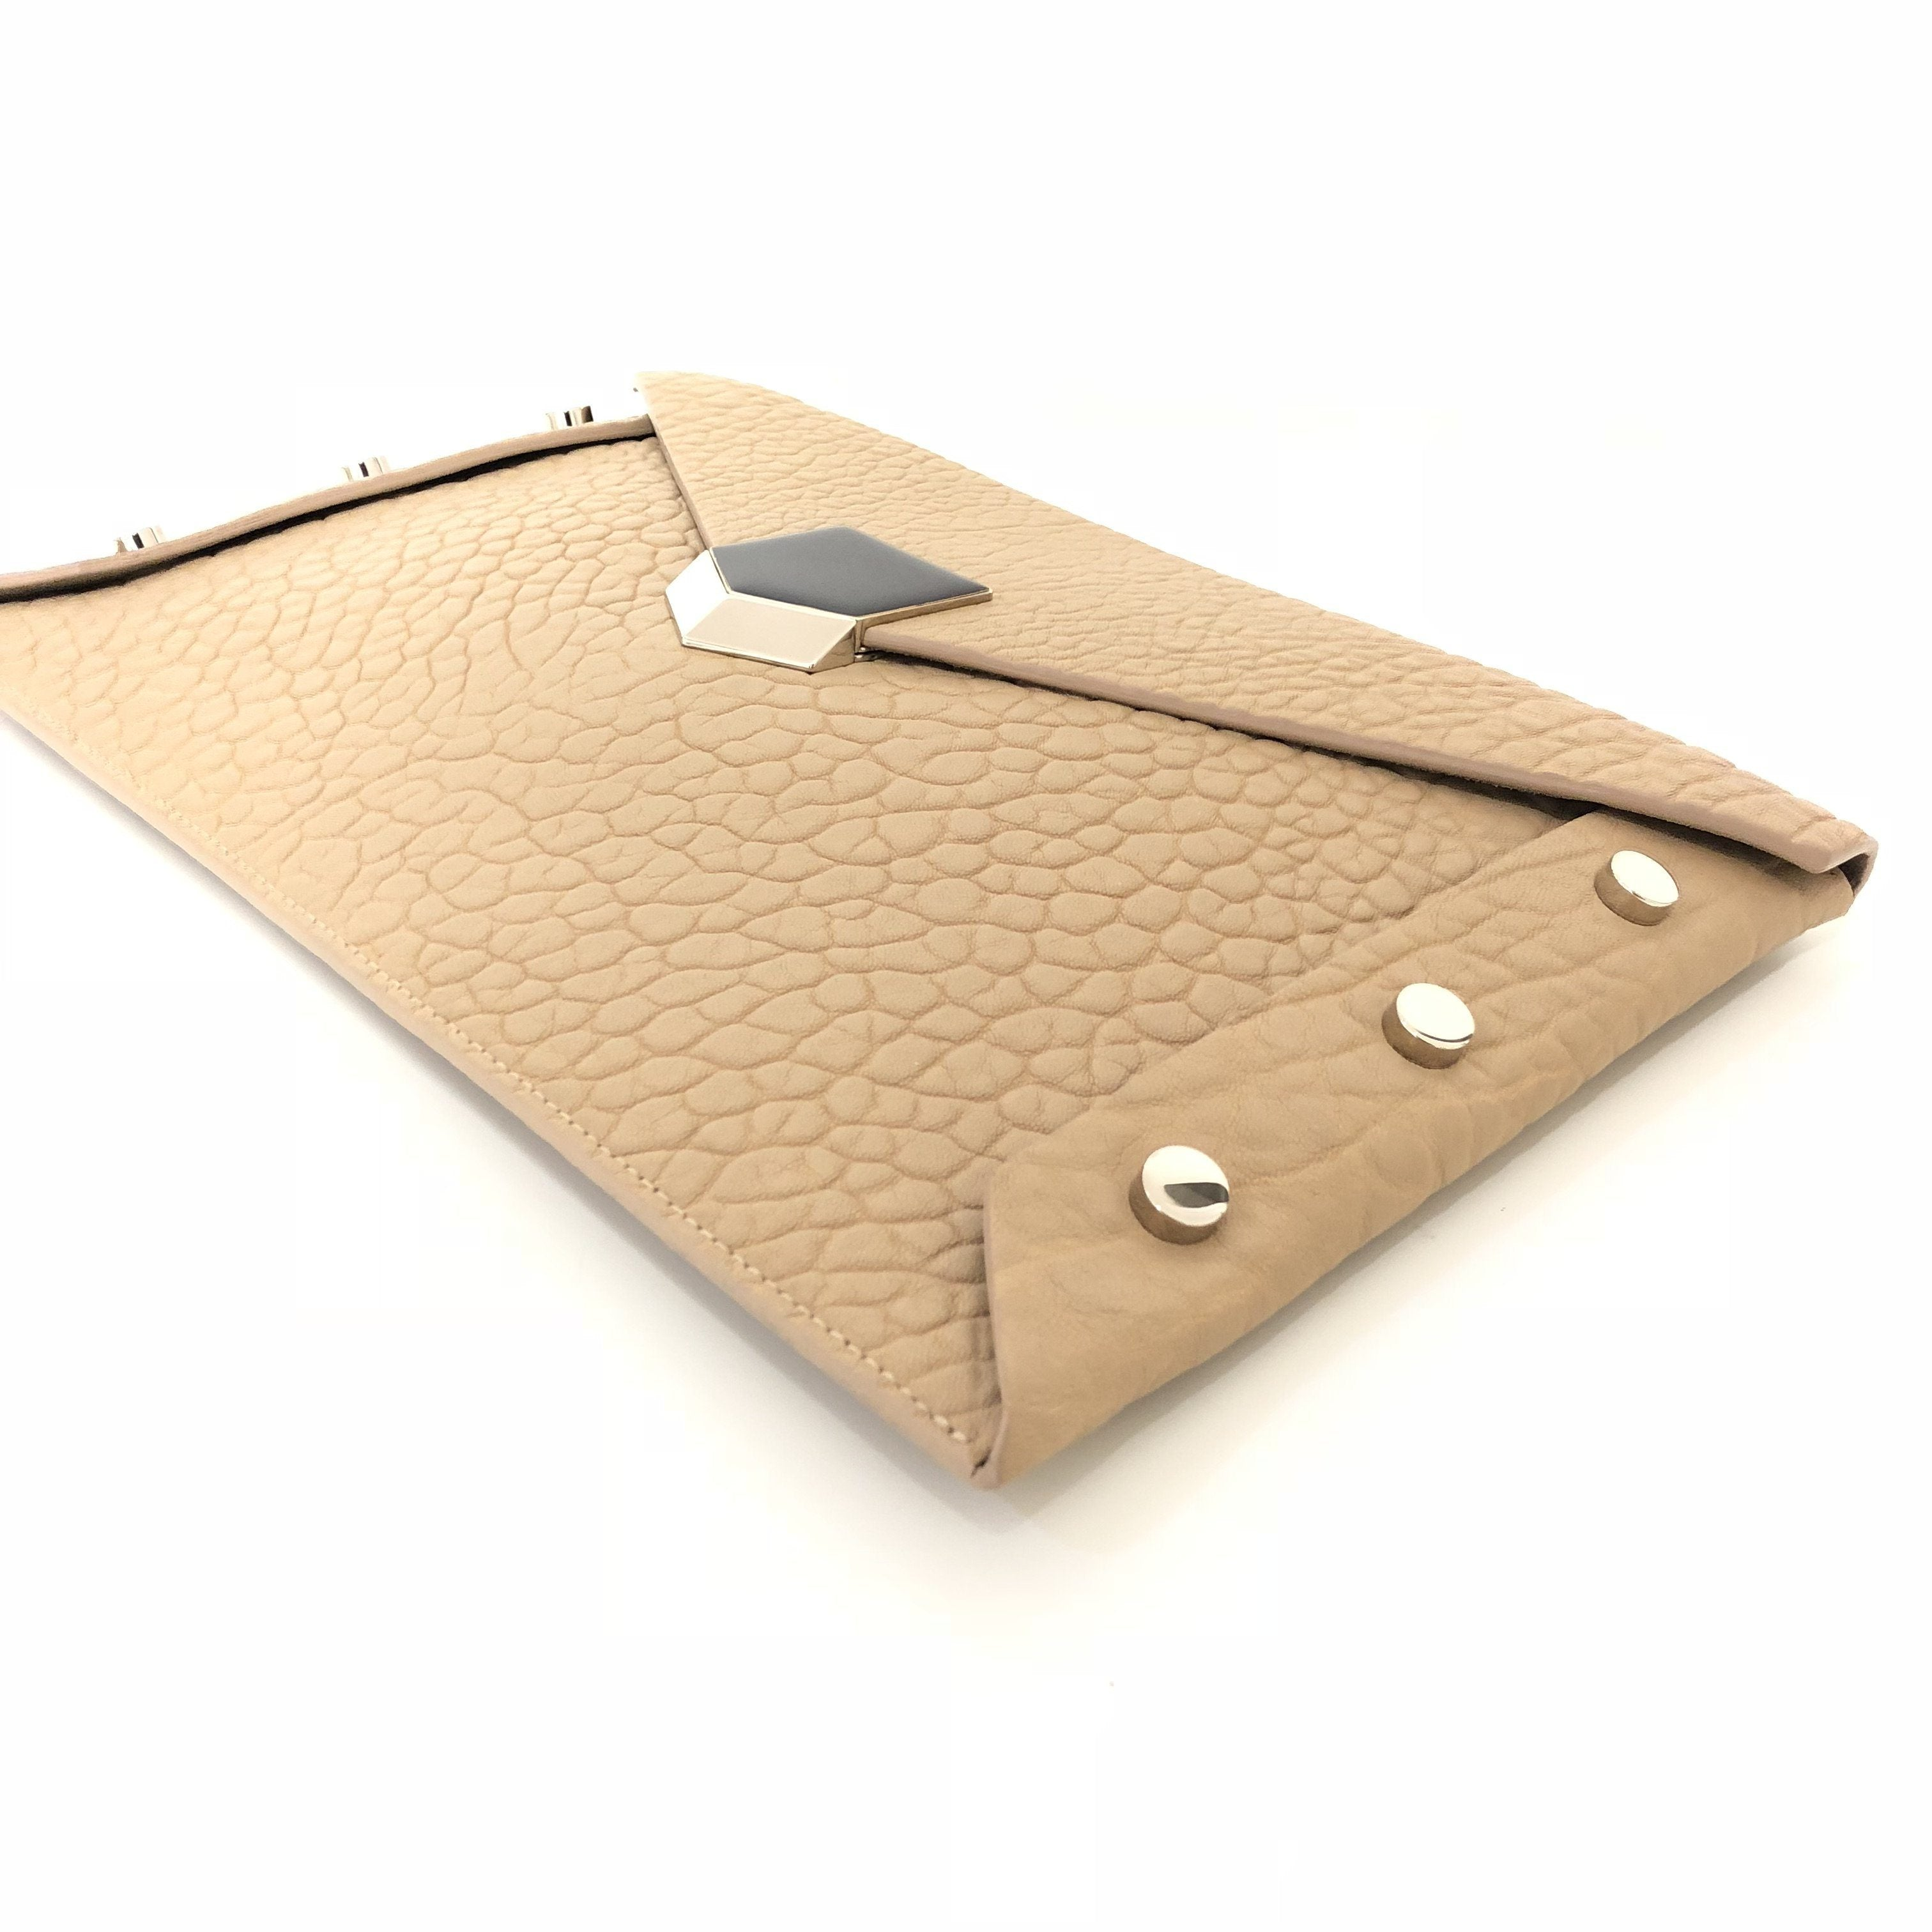 Jimmy Choo Beige Lockett Envelope Clutch